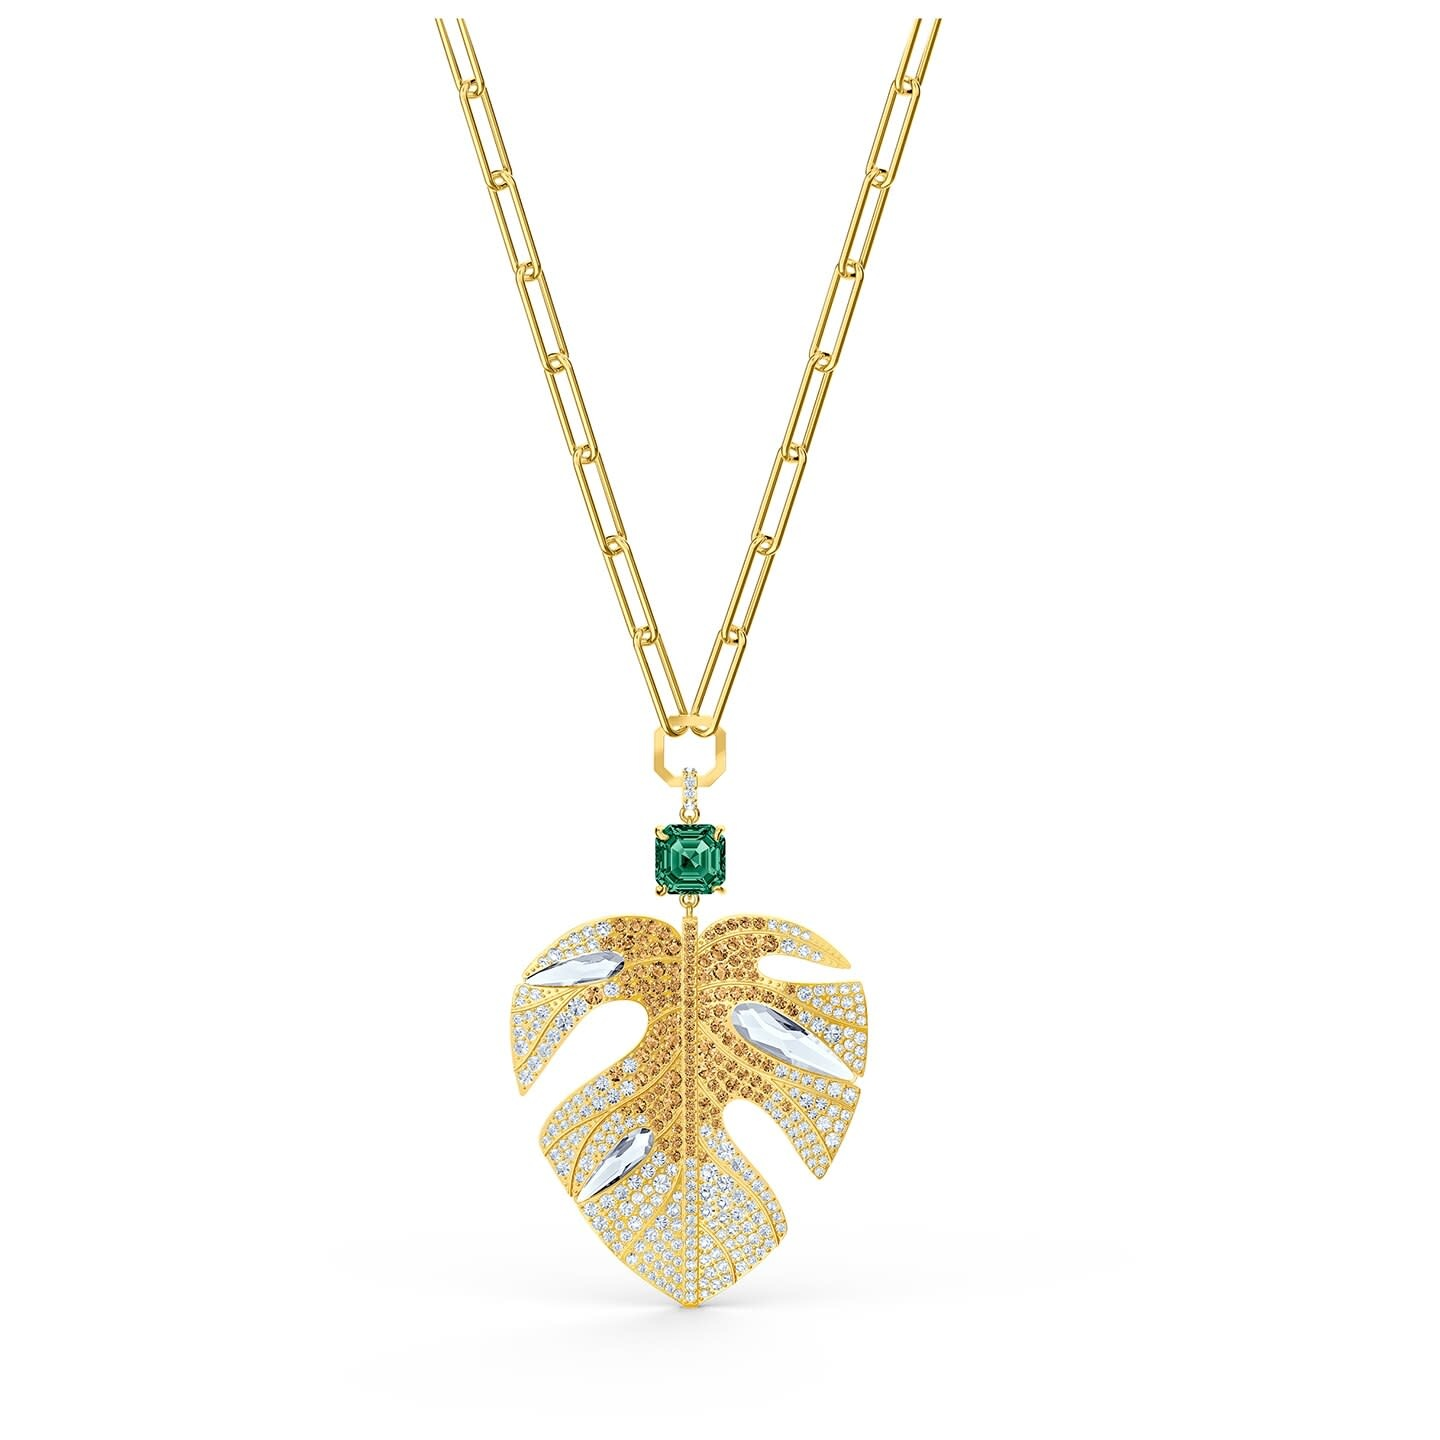 Swarovski Swarovski ketting Tropical Leaf 5512695